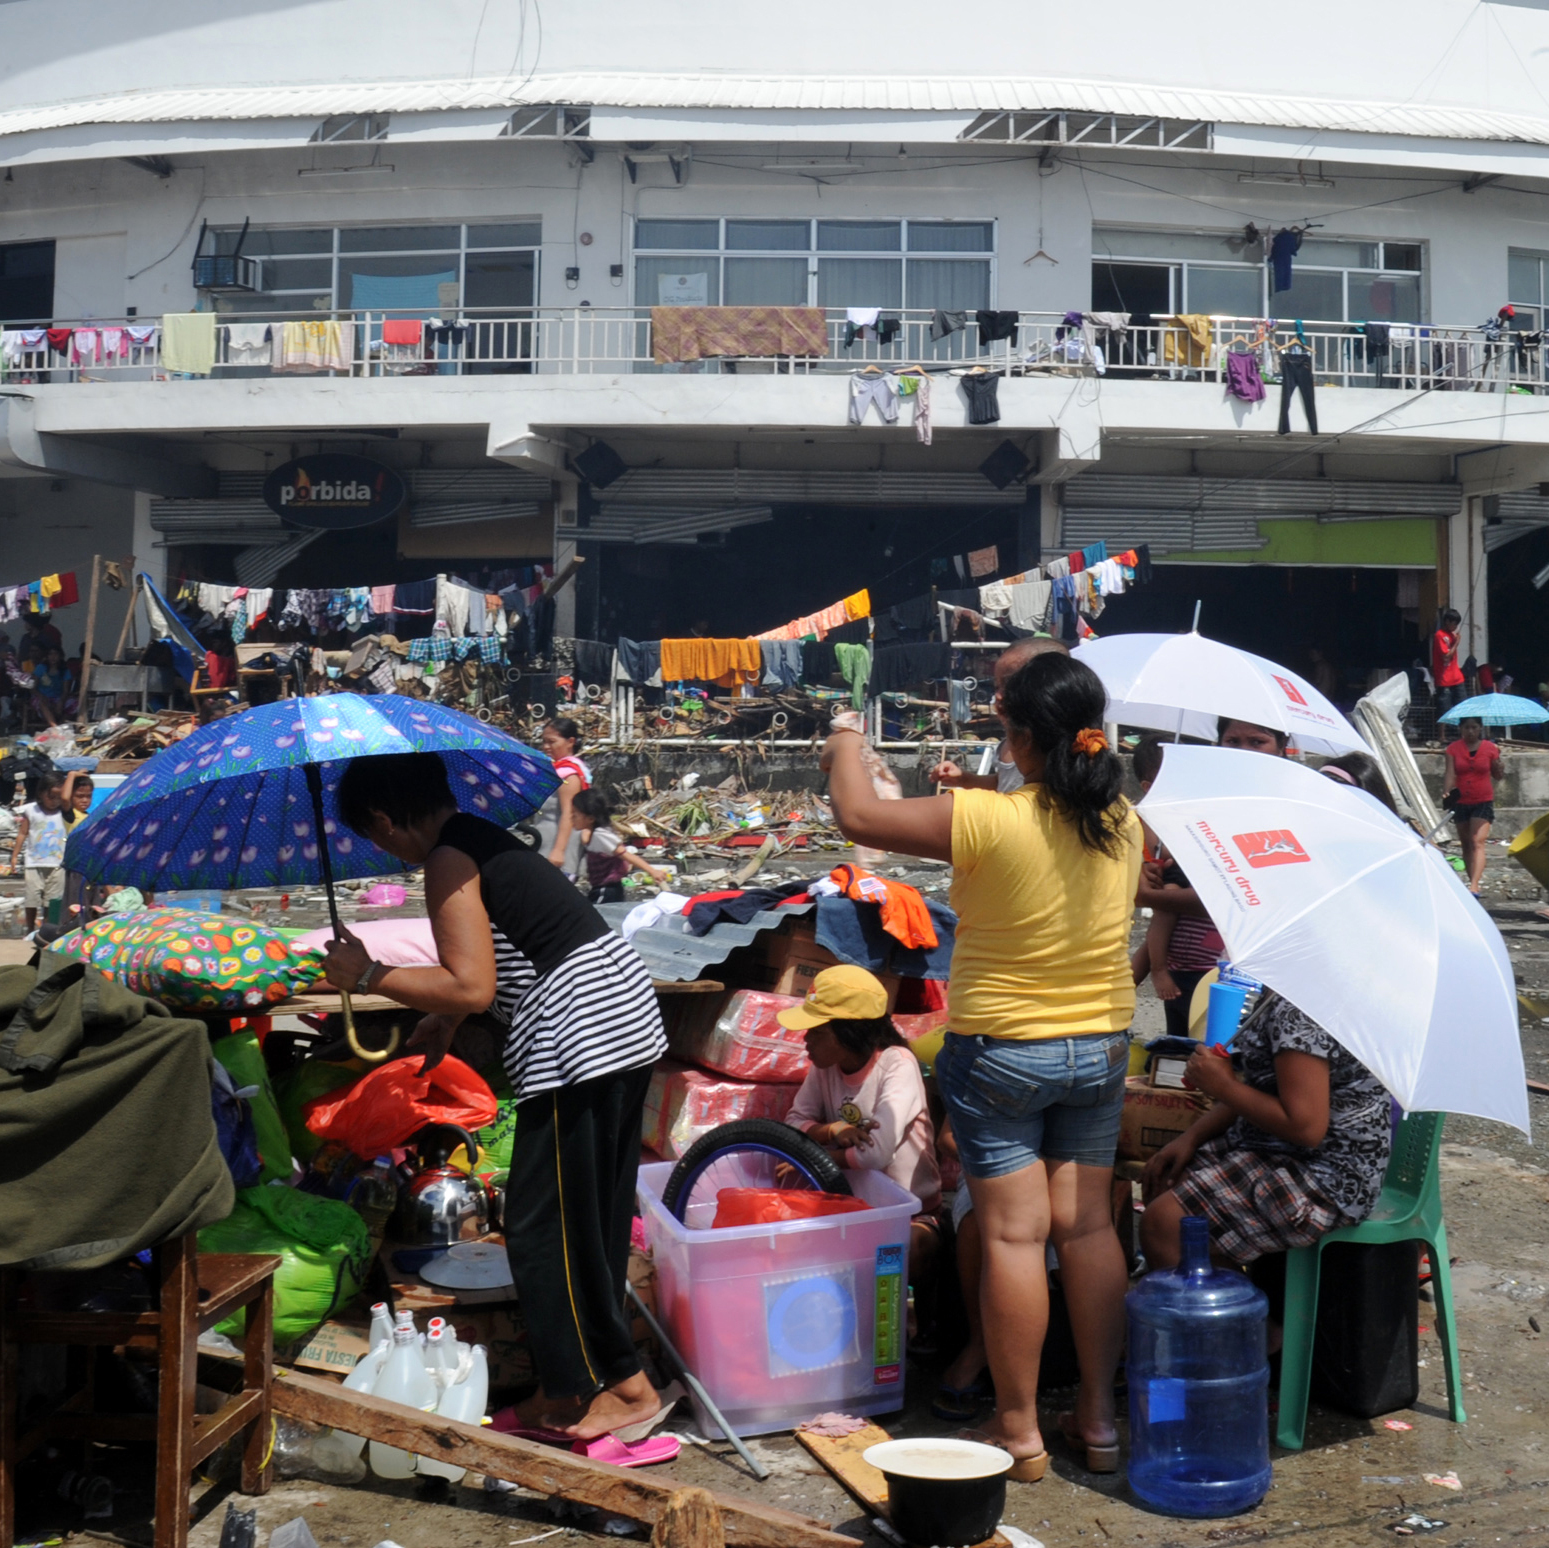 Residents rest outside a stadium used as an evacuation center in Tacloban, Leyte province, central Philippines on Sunday after devastating Typhoon Haiyan hit the city on Friday.